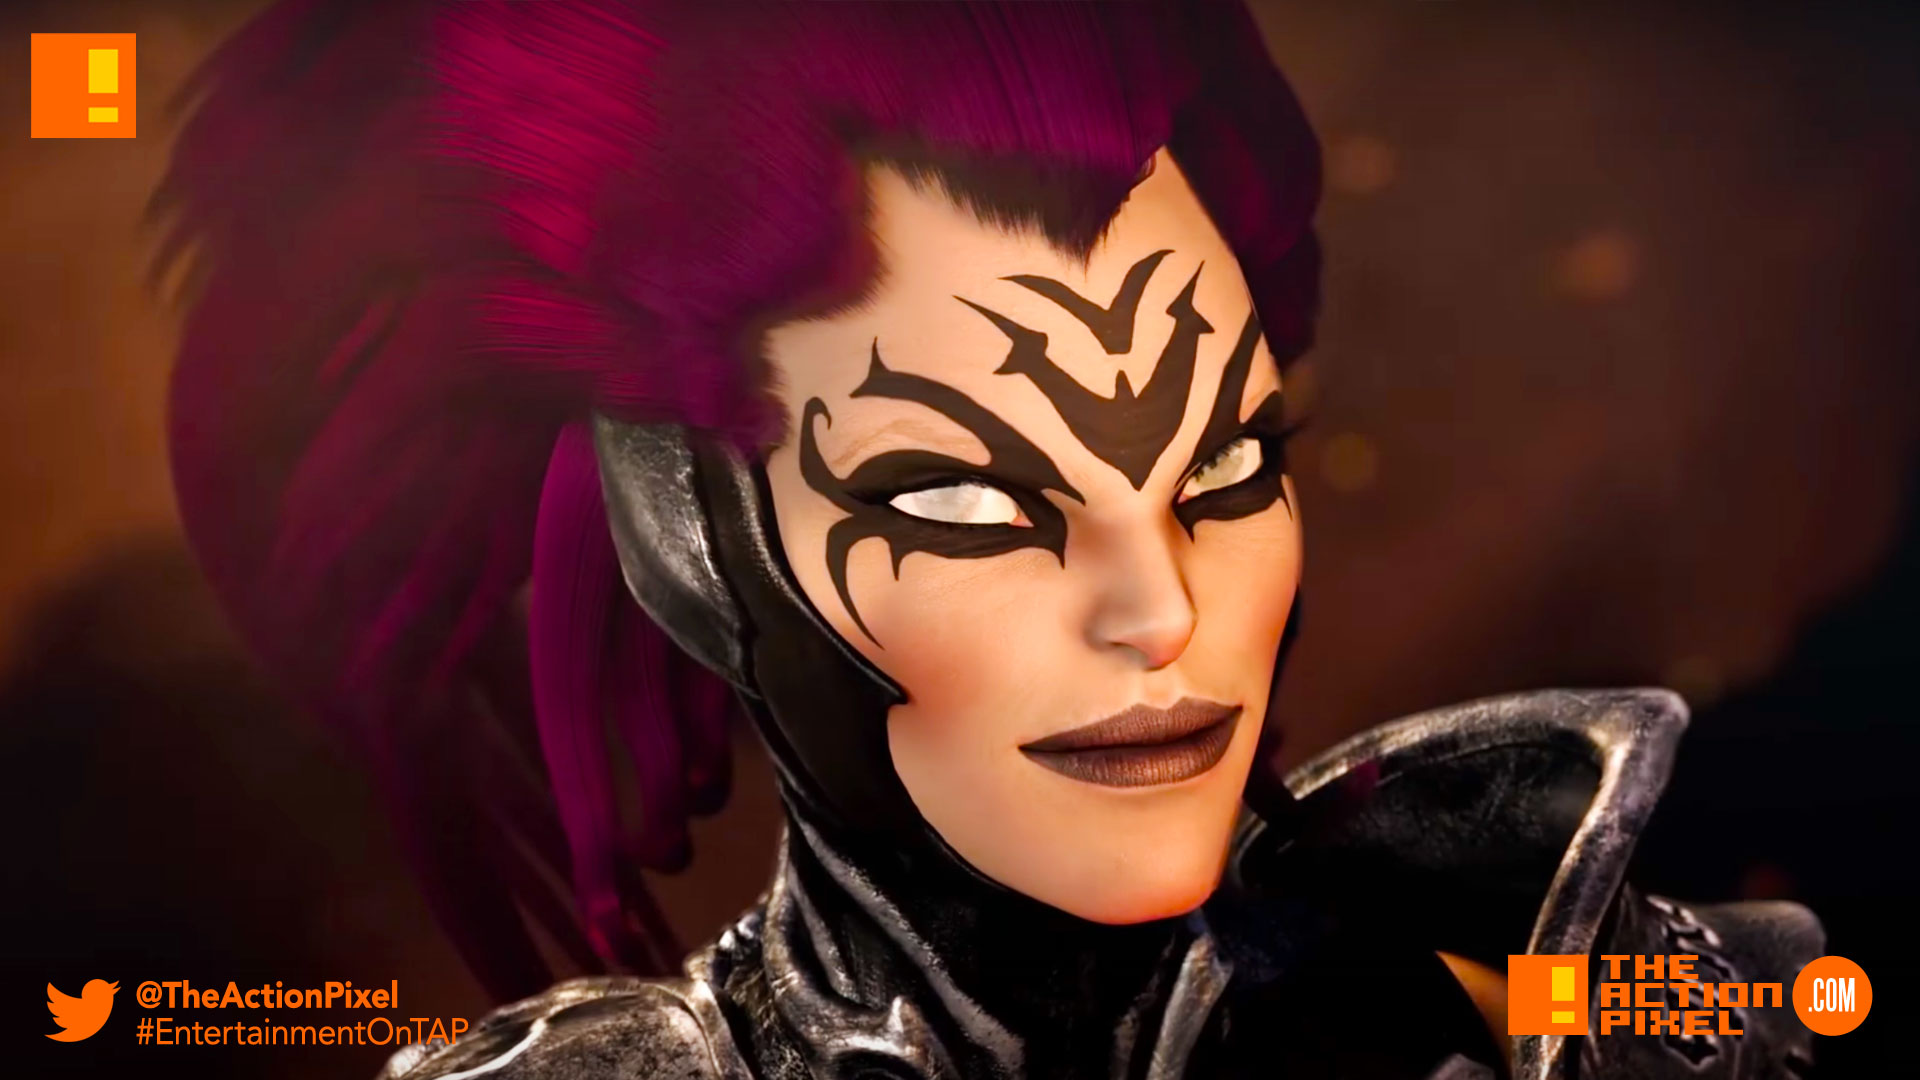 darksiders, darksiders 3, mage,fury,whip,gunfire games,nordic thq, the action pixel, entertainment on tap,reveal trailer, trailer